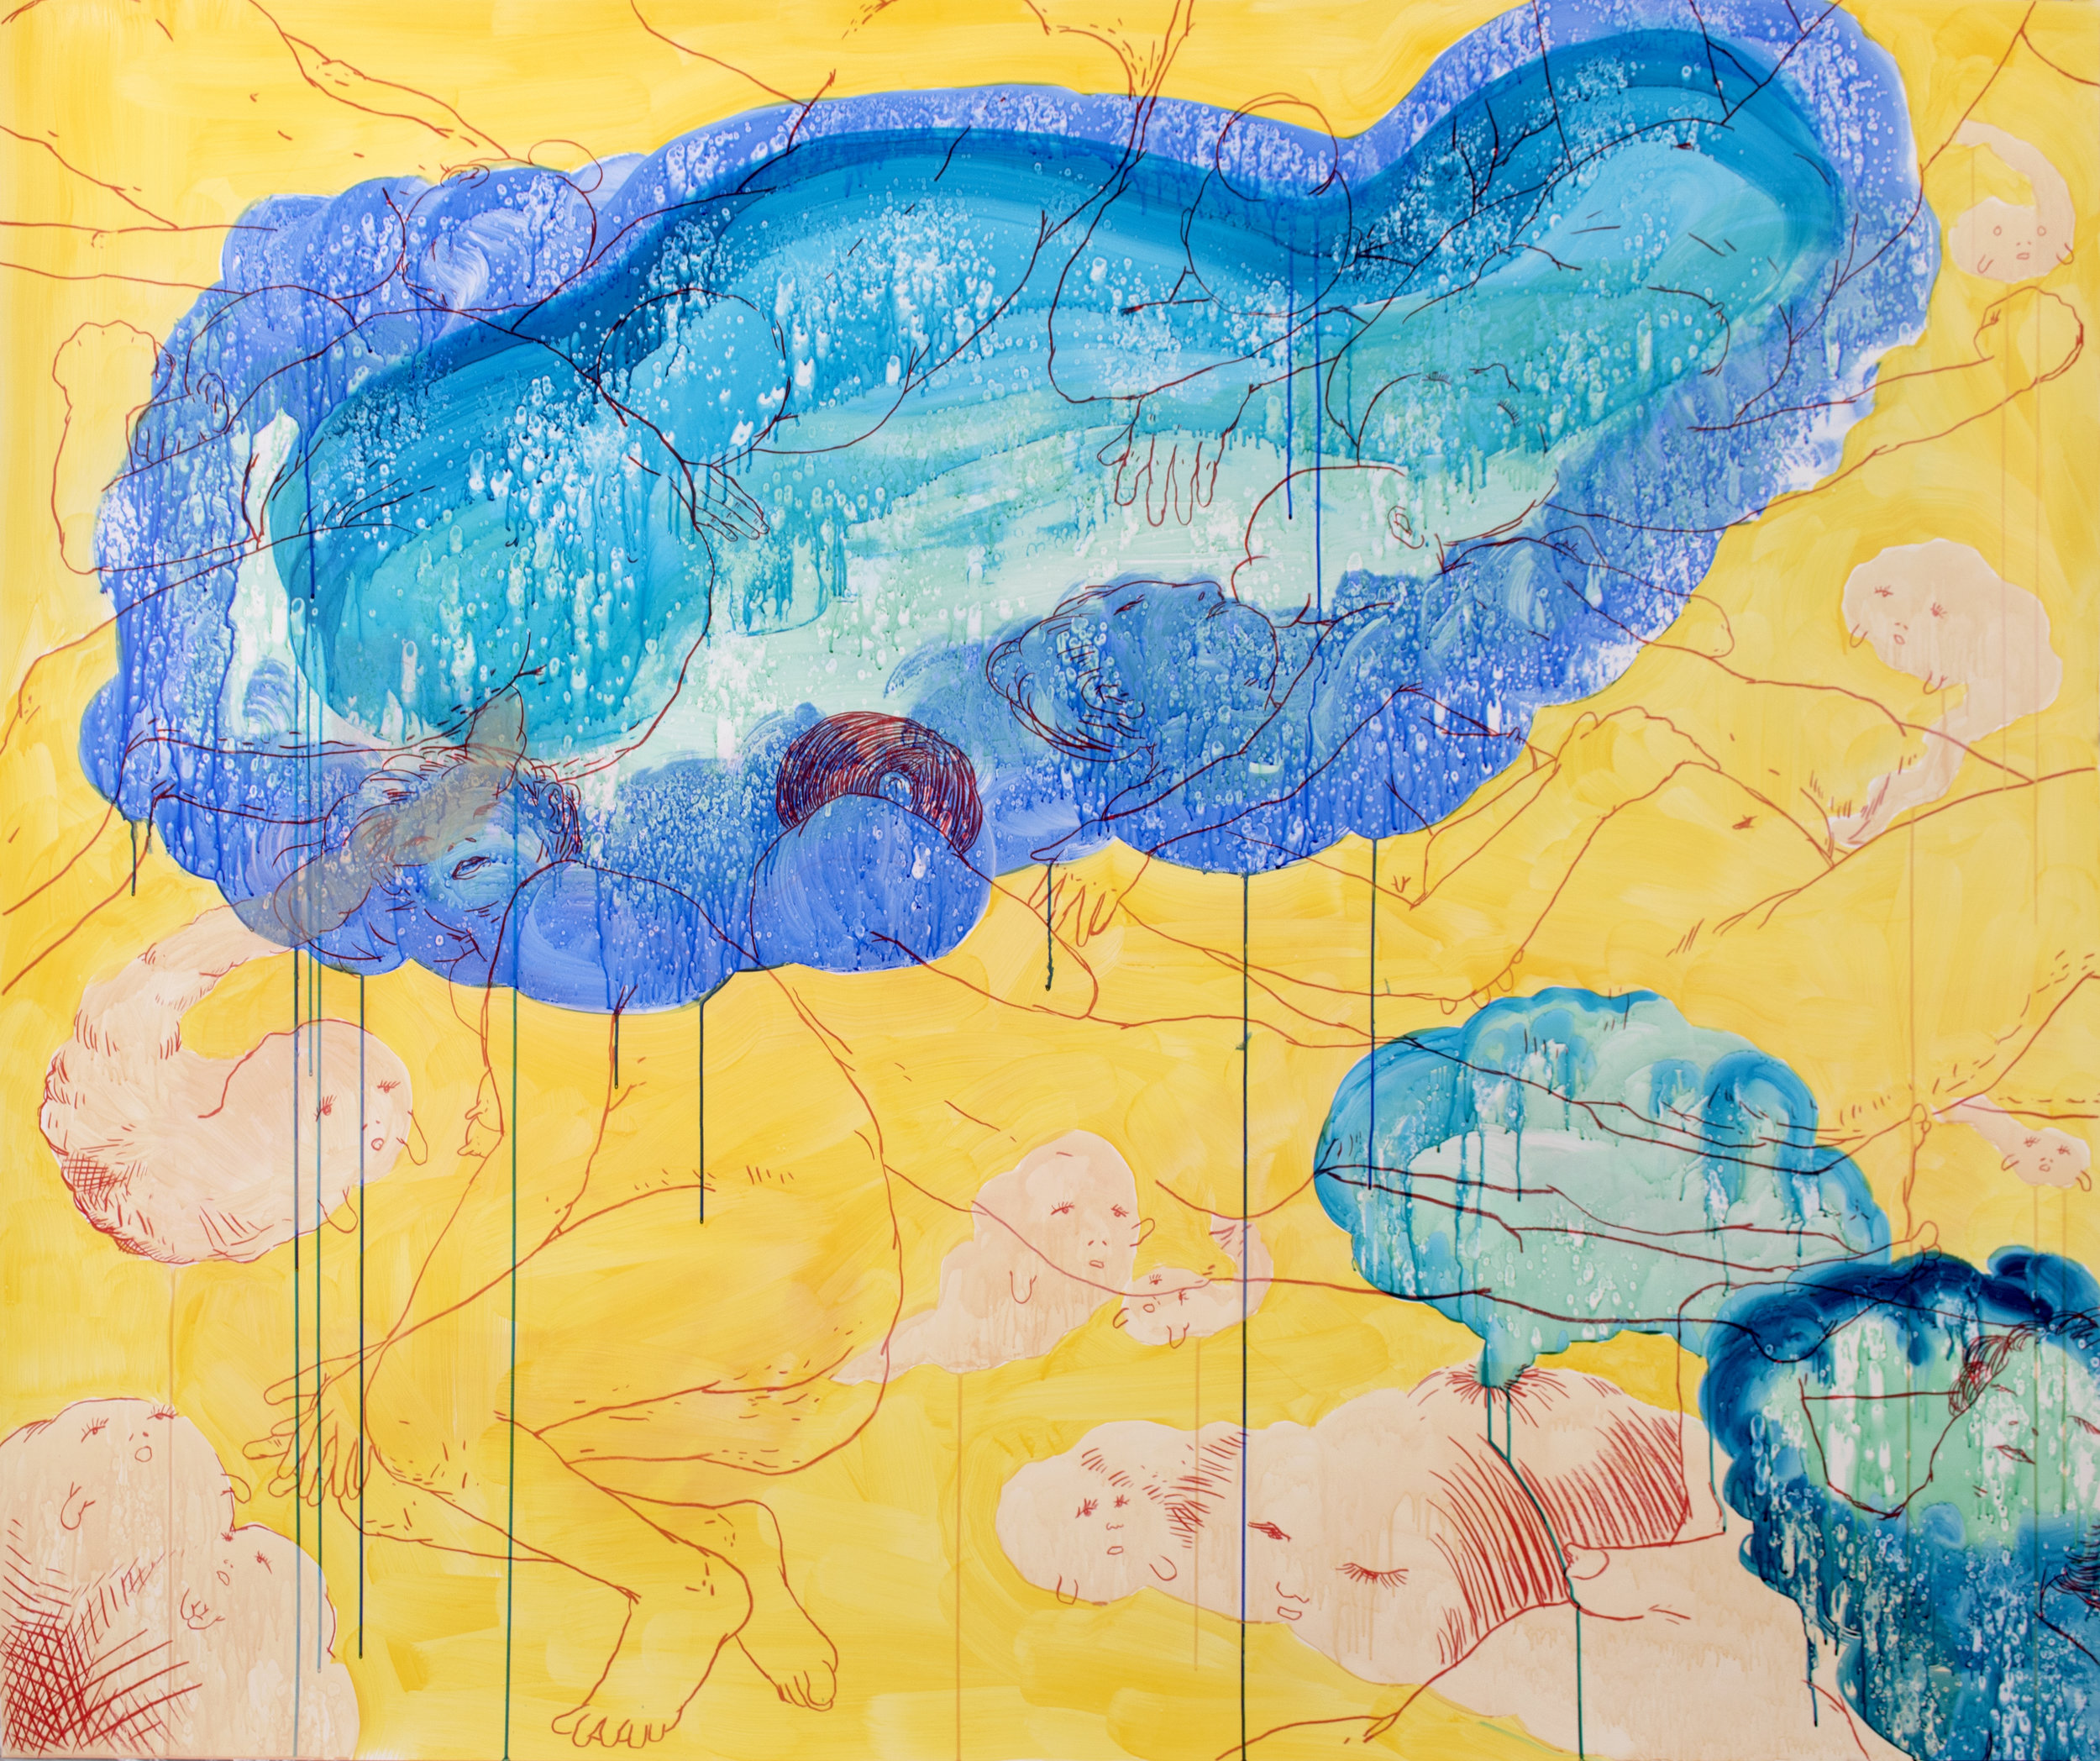 """Nicole Maloof """"The Stuff Dreams Are Made Of"""" 2016, crayon and acrylic on polypropylene,60"""" x 72"""""""